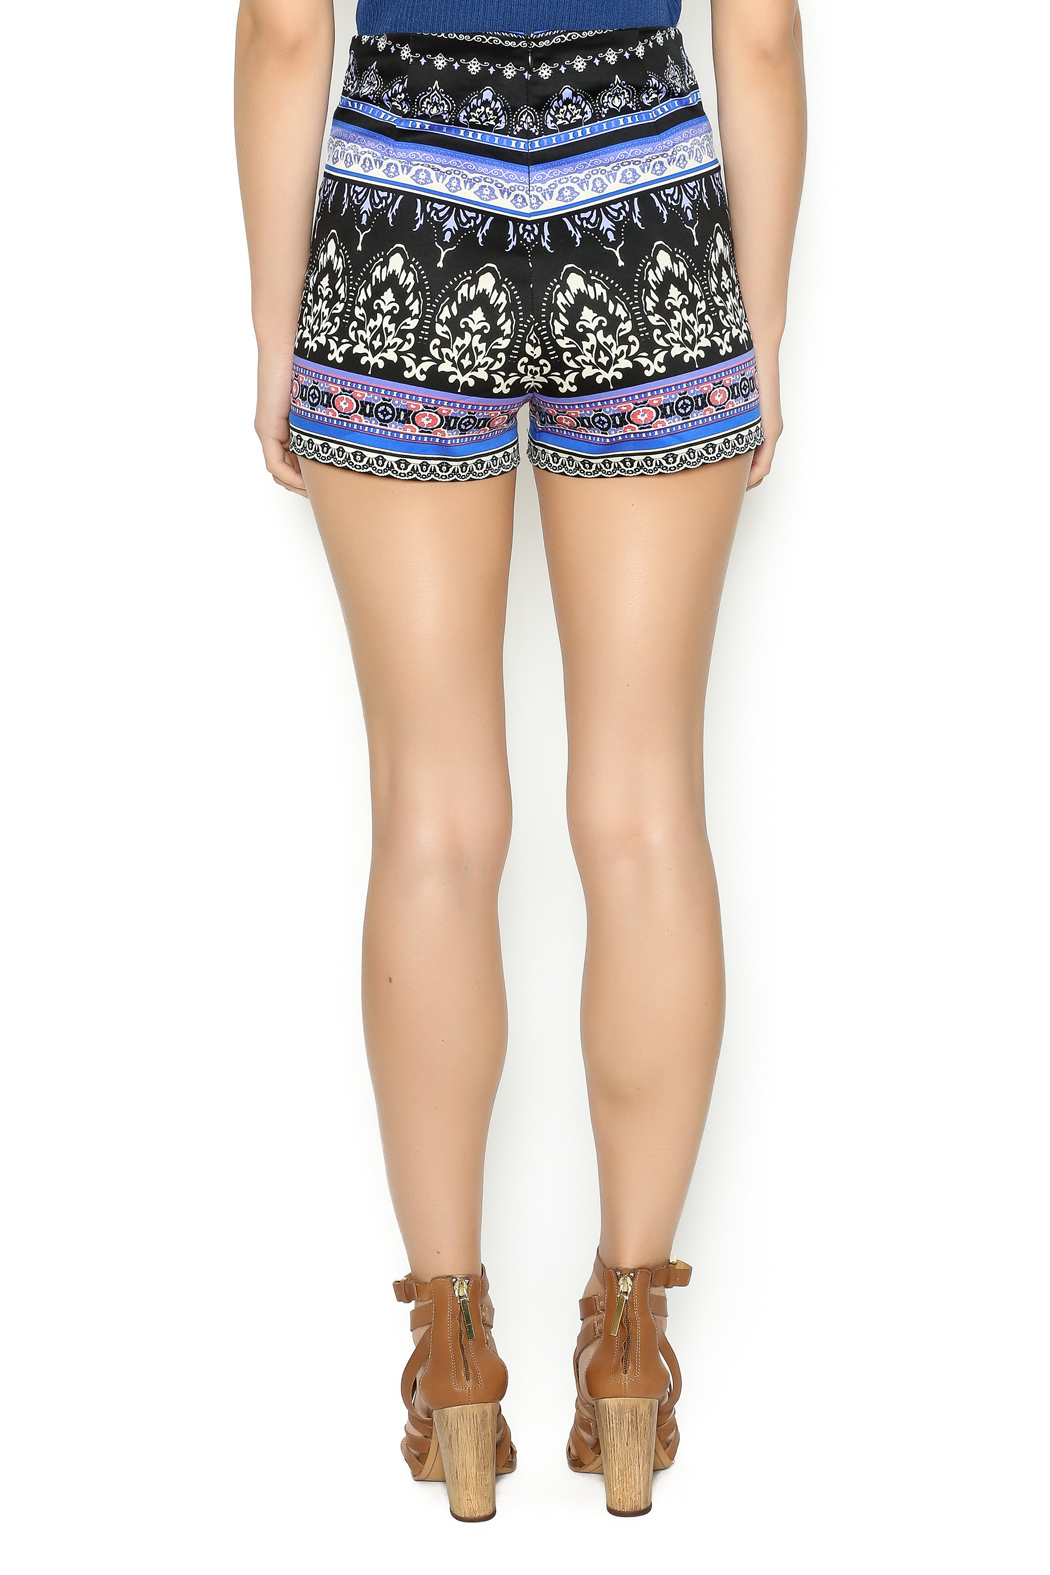 Flying Tomato High Waisted Printed Short From New York